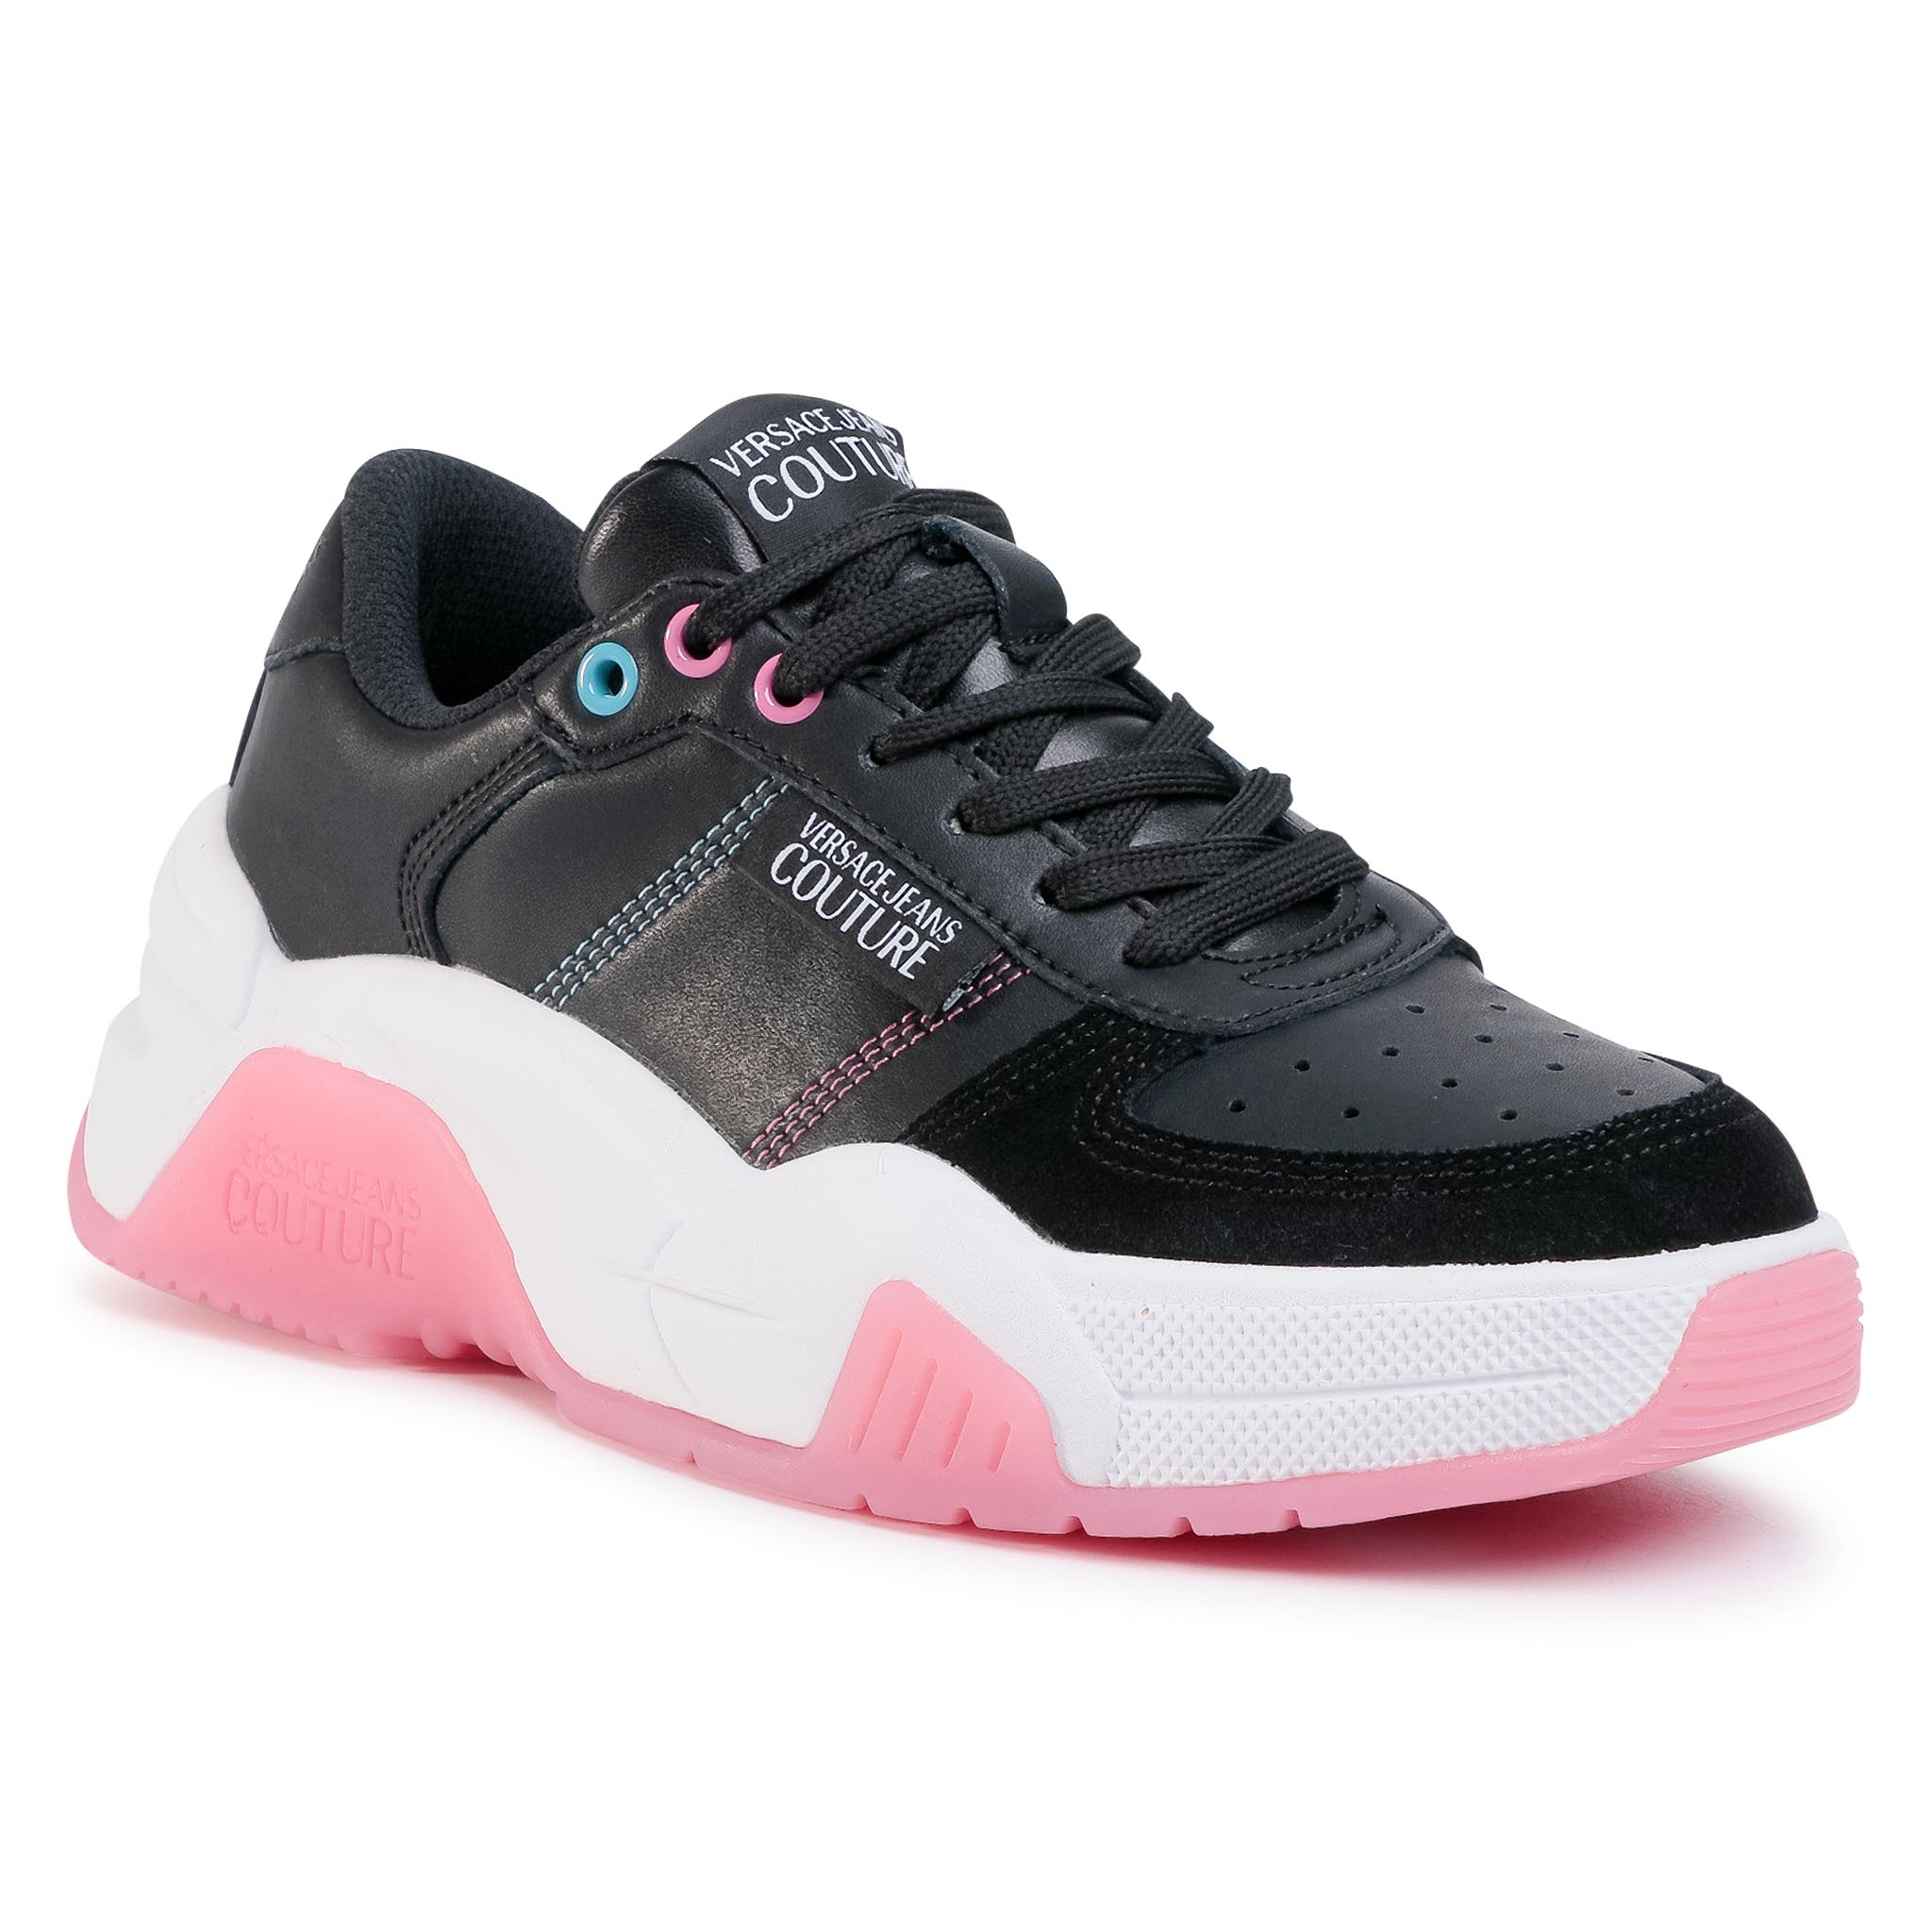 Sneakers VERSACE JEANS COUTURE - E0VVBSF8 71522 899